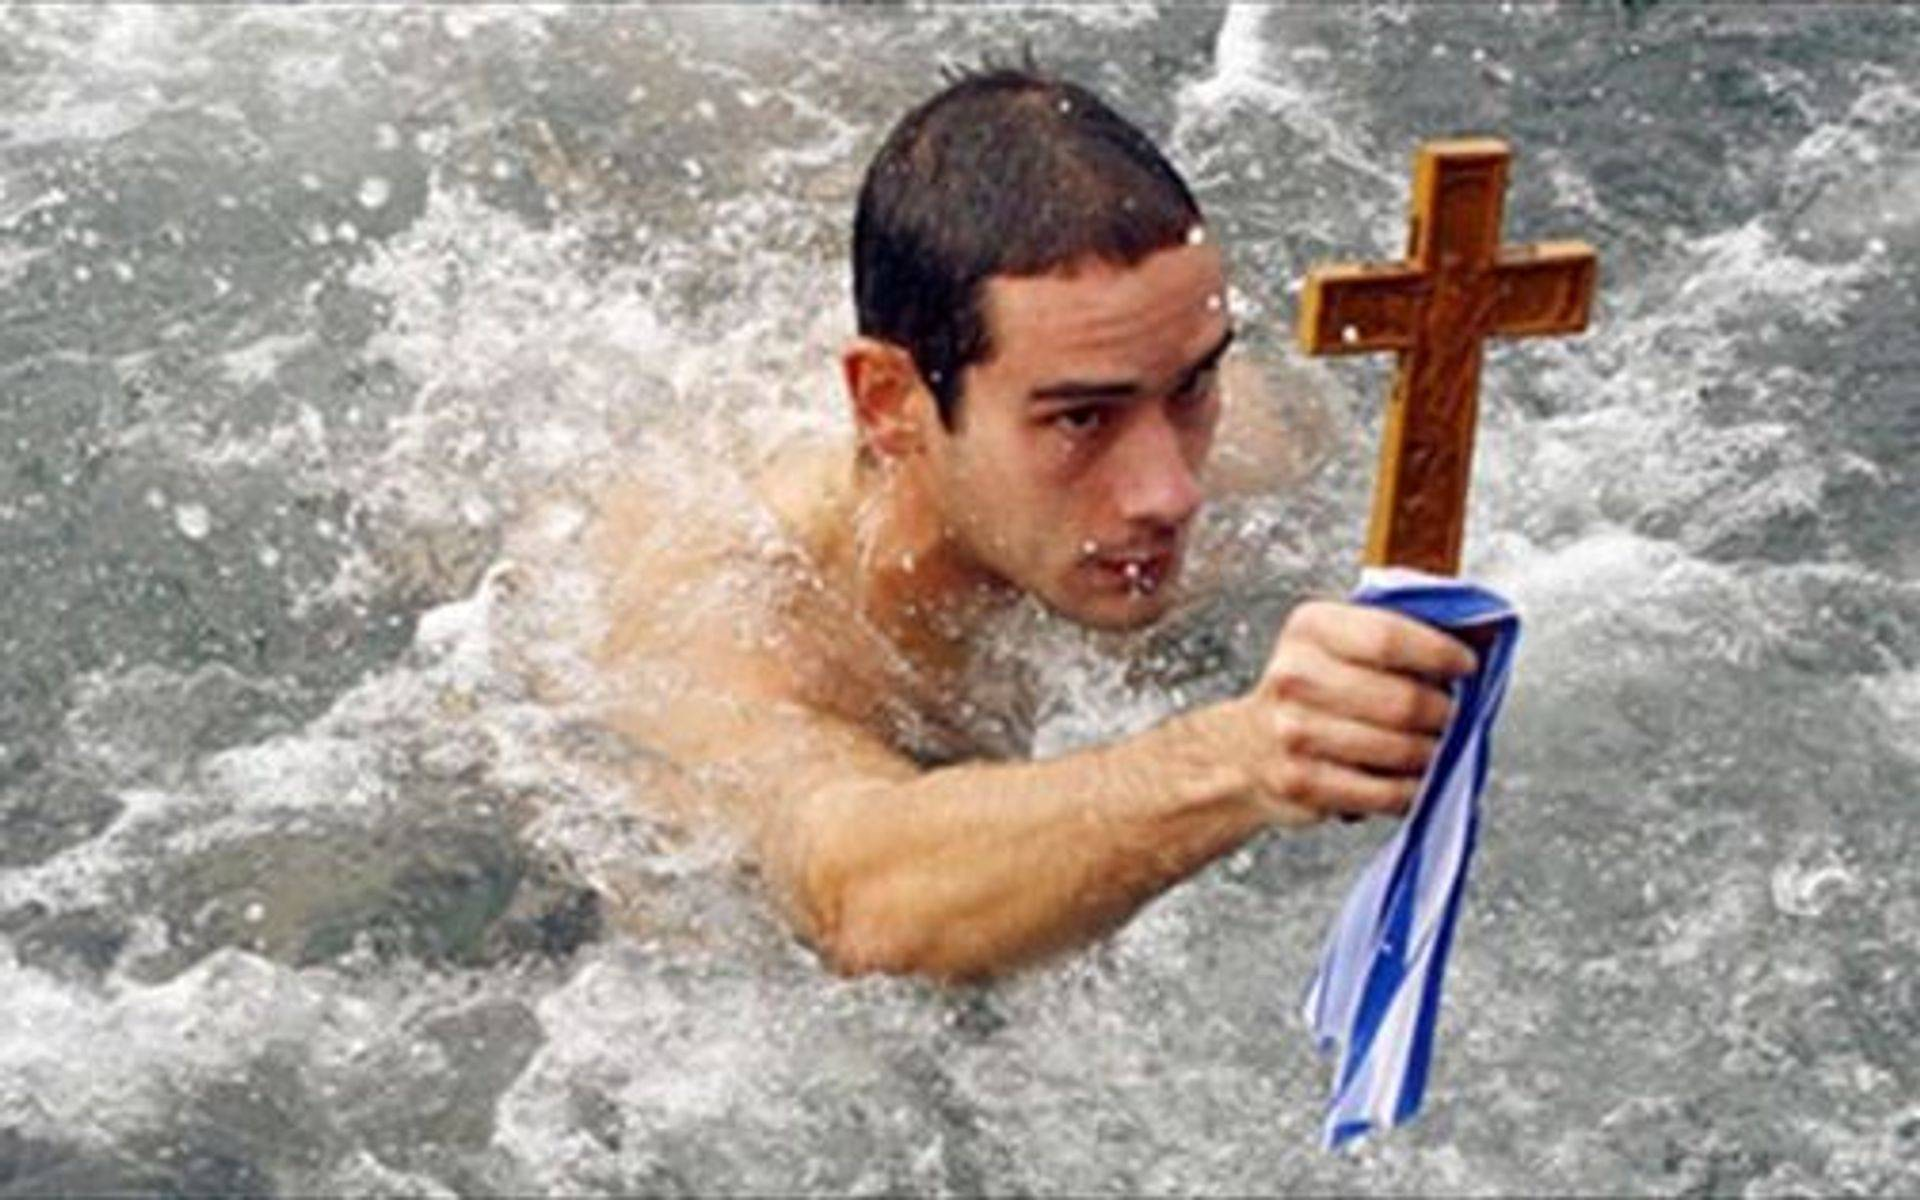 Epiphany tradition, diving in the Frozen waters fro the Cross, as the Greek Orthodox tradition says